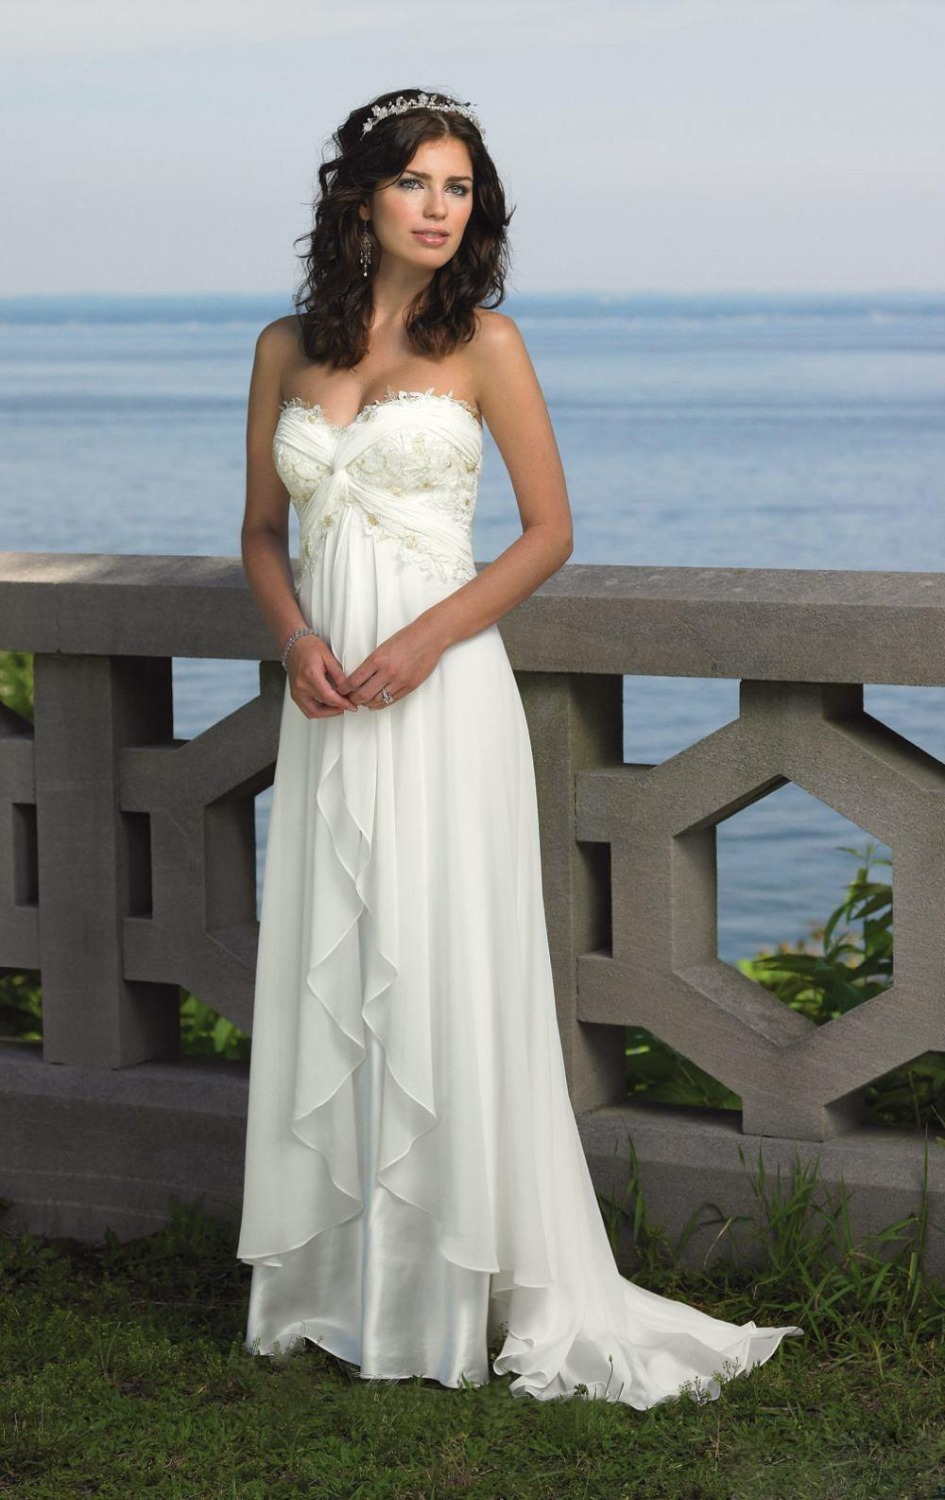 Compare Prices on Wedding Dresses Beach- Online Shopping/Buy Low ...